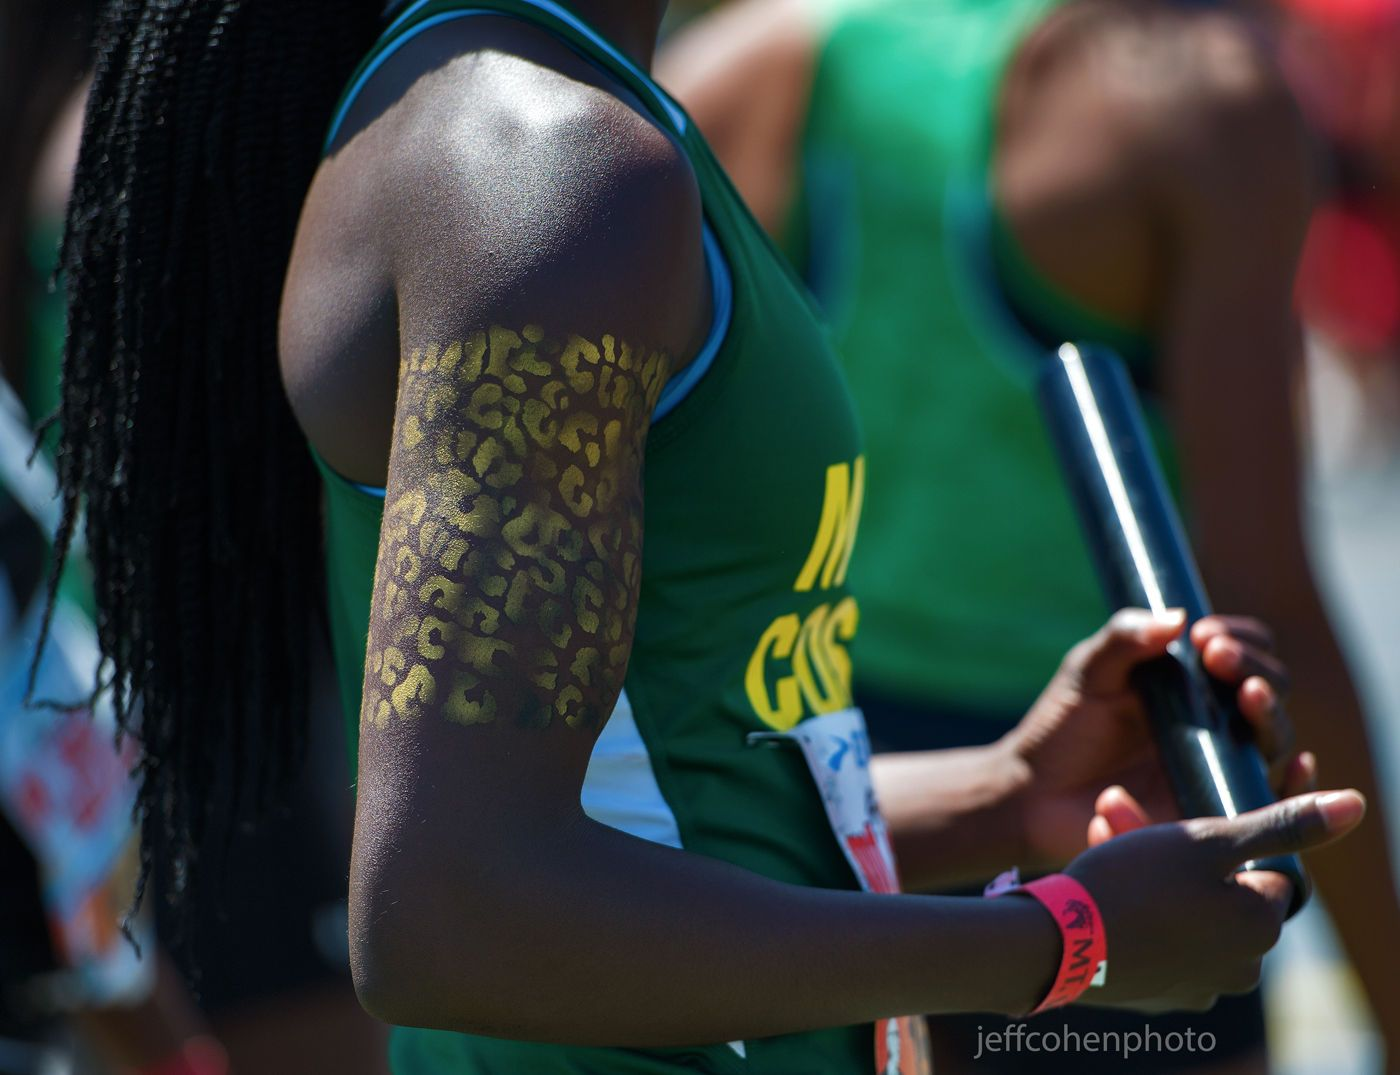 1mtsacrelays_4_16_16_cheetah_tatt__jeff_cohen_photo_75_web.jpg